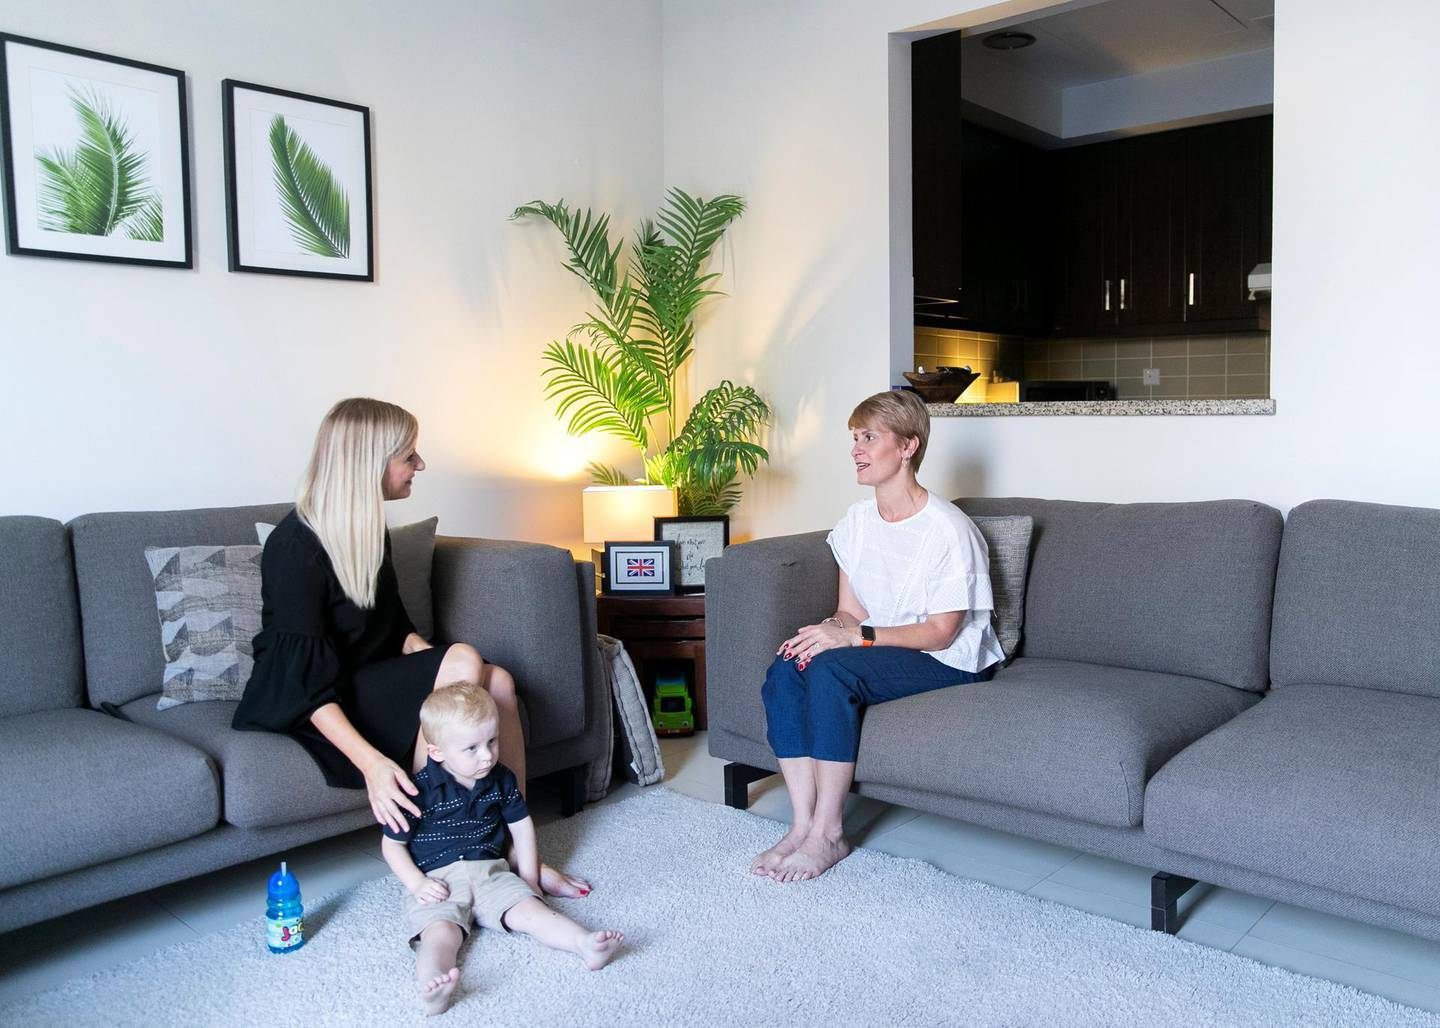 """DUBAI, UNITED ARAB EMIRATES. 31 OCTOBER 2019. Claudine Gillard, right, of Sweet Dreams Consulting, consults Kelly Allison on methods to help her put her 3 year old son, Jack, to sleep.Claudine offers """"sleep training"""" methods for families with babies and toddlers. The methods include gentle, parent-led approaches with the help of expert infant sleep consultants who condemn the traditional """"cry it out"""" methods of sleep training.(Photo: Reem Mohammed/The National)Reporter:Section:"""